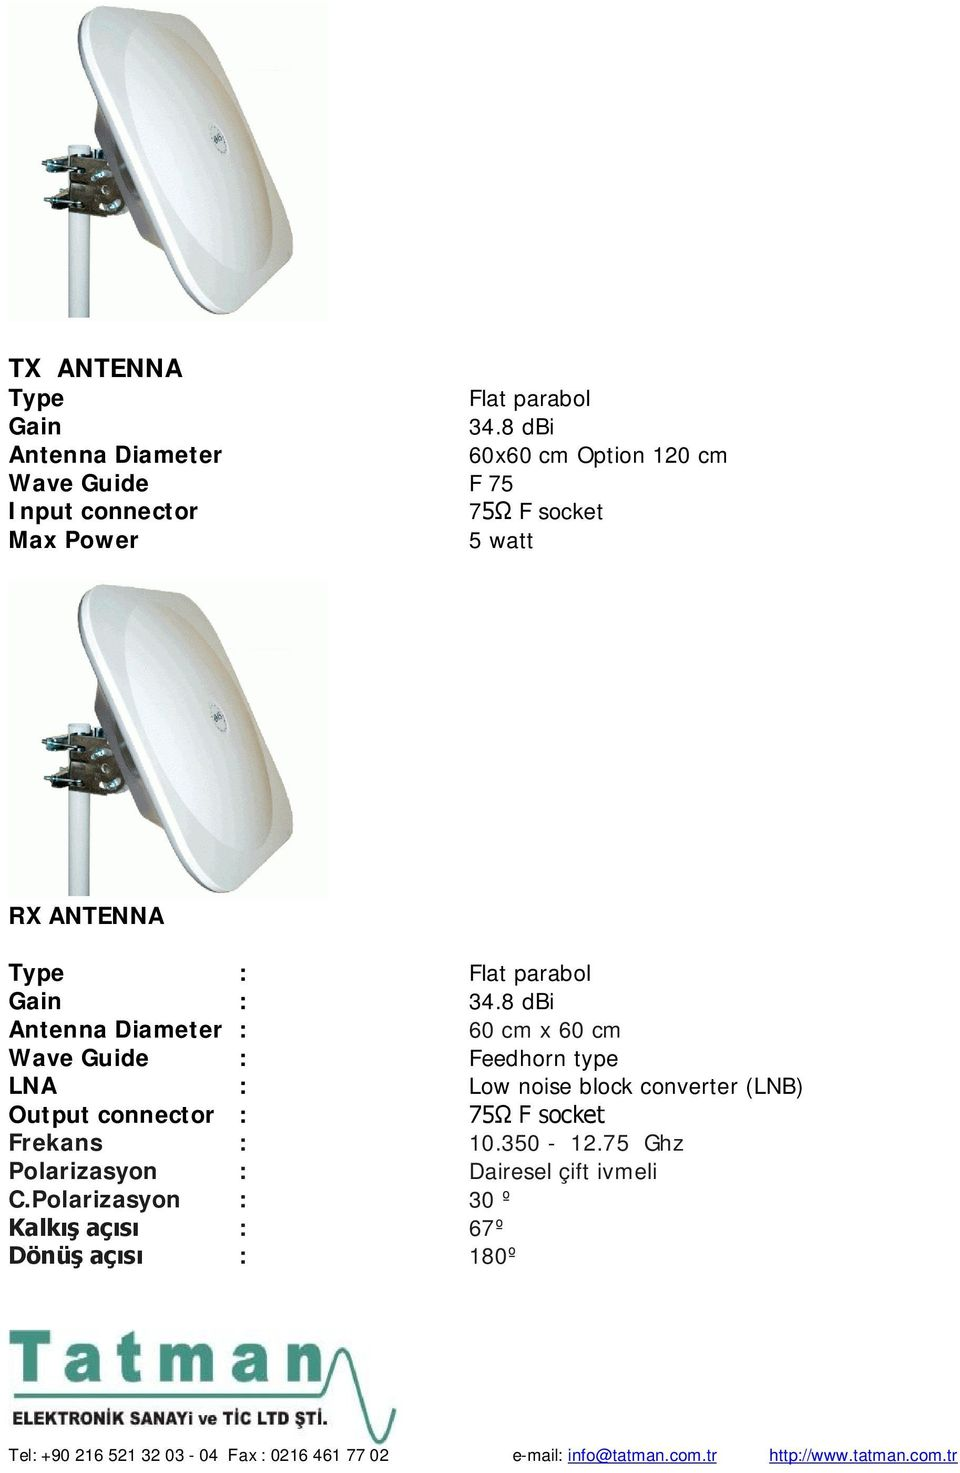 ANTENNA Type : Flat parabol Gain : 34.